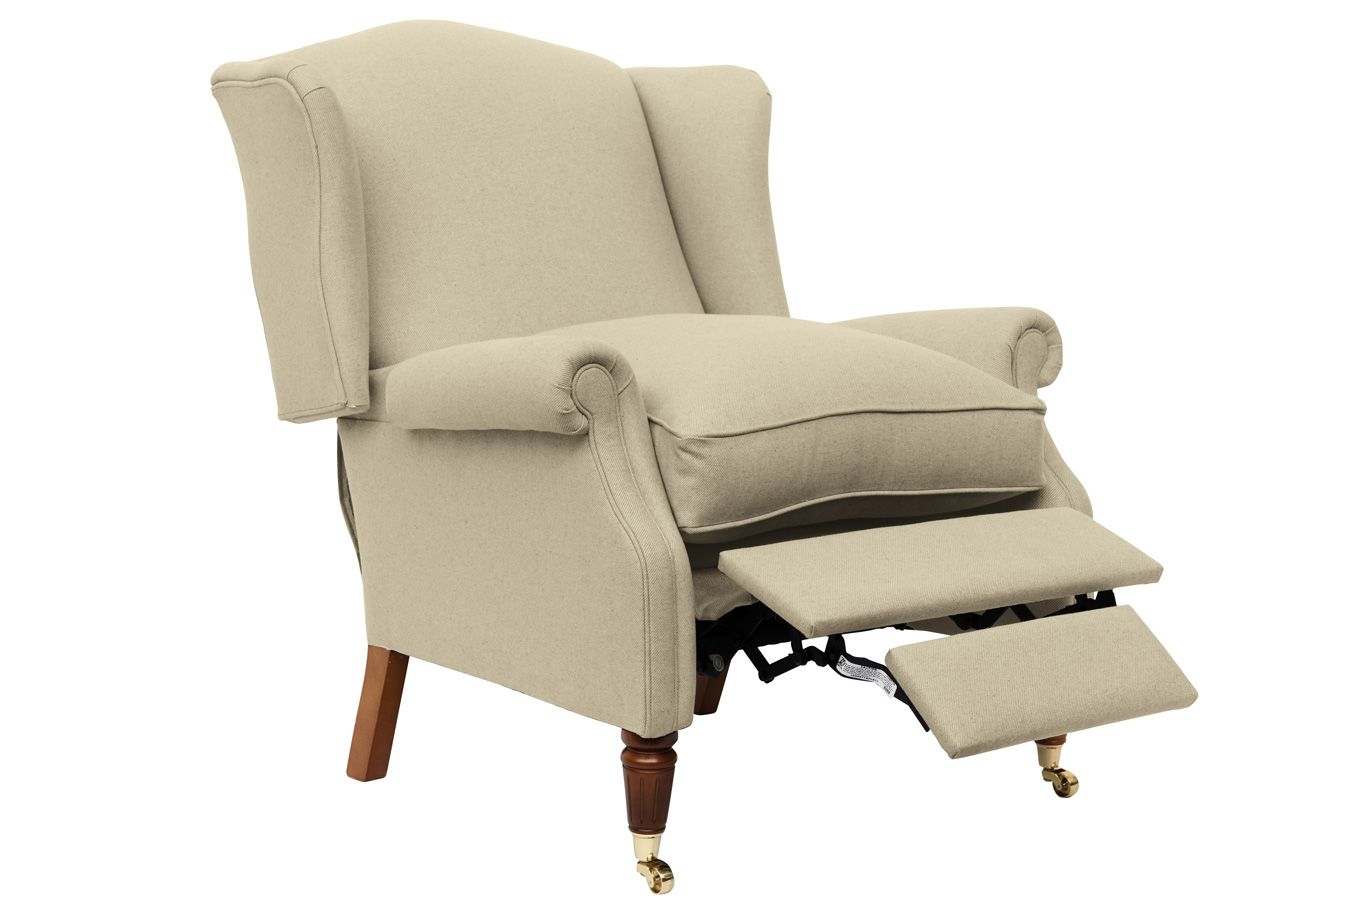 Upholstered Chair Styles Guide | Southwold Upholstered Recliner  sc 1 st  Pinterest & Upholstered Chair Styles Guide | Southwold Upholstered Recliner ... islam-shia.org